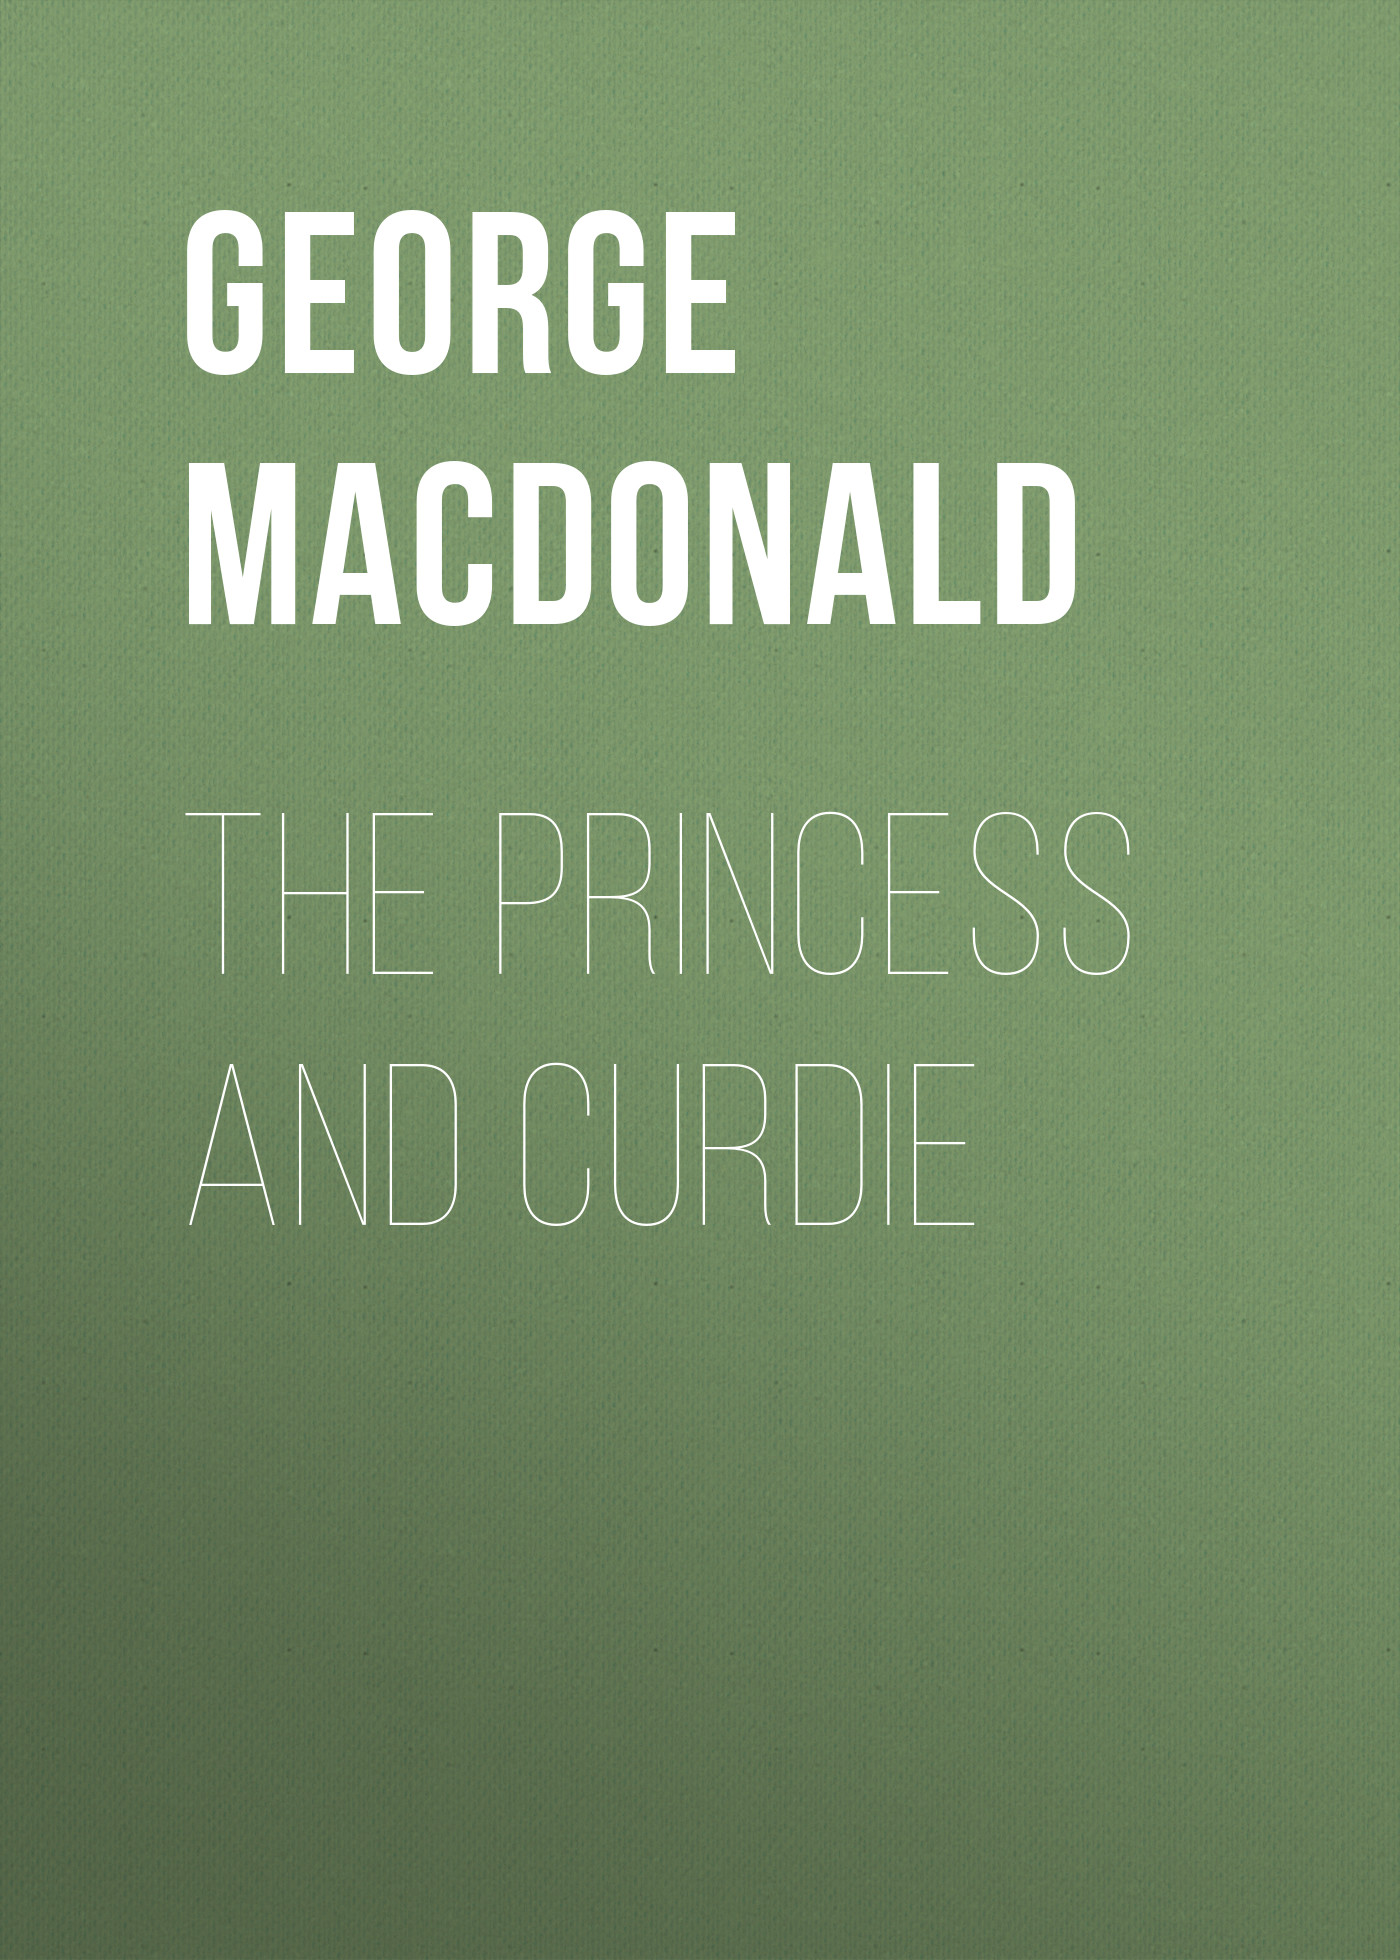 George MacDonald The Princess and Curdie